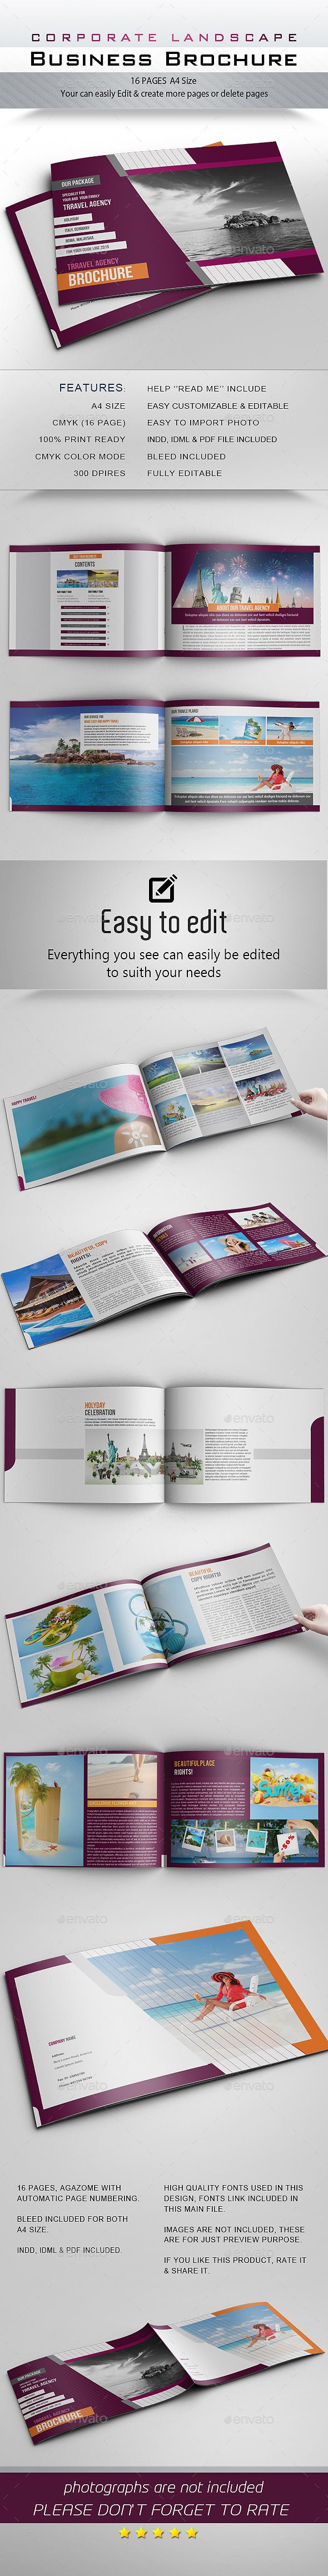 Best Travel Campain Images On   Graphics Infographic